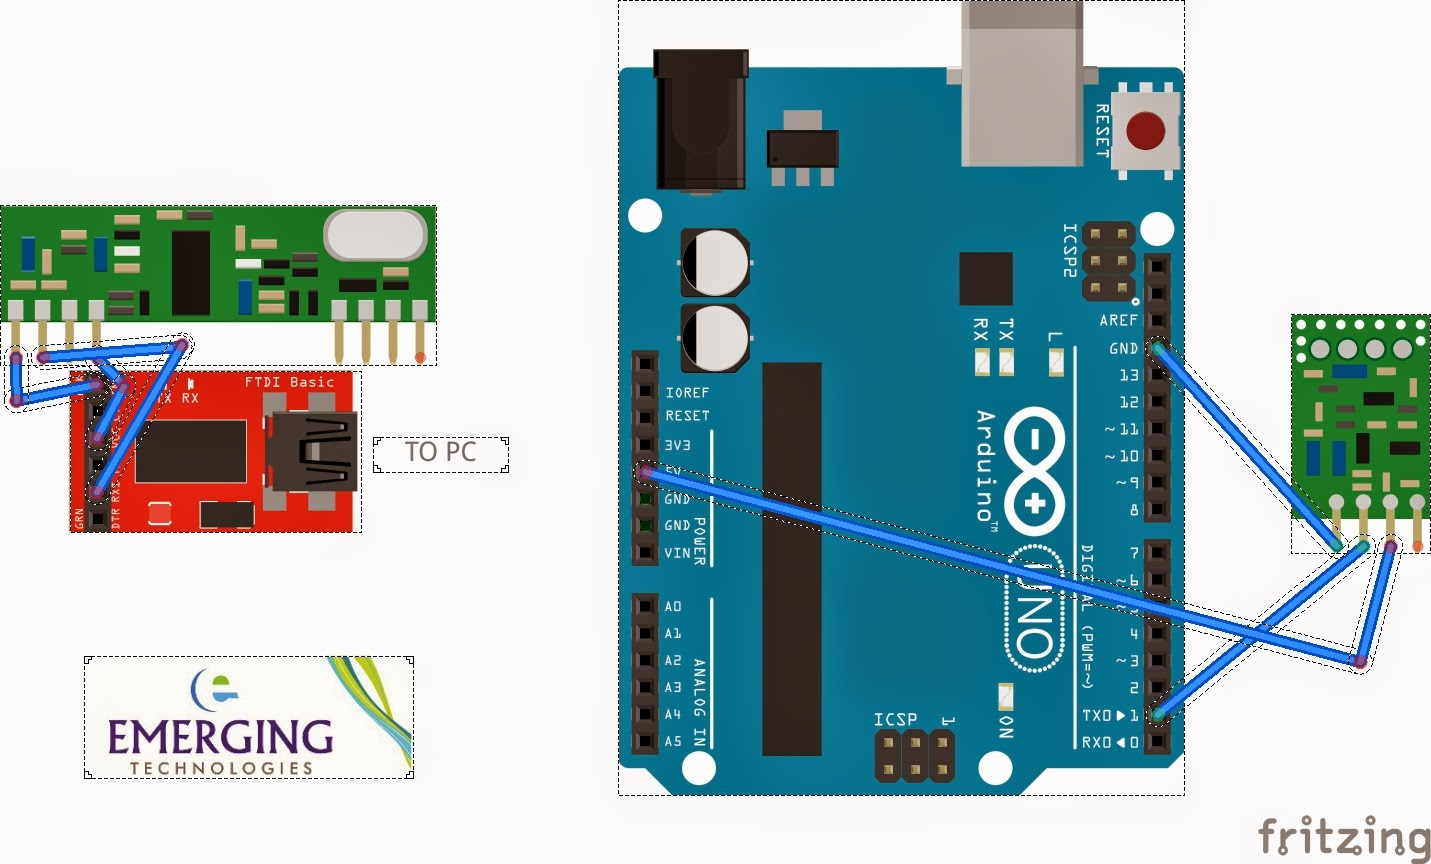 Emerging Technologies Interfacing Rf Transmitter And Receiver Circuit Diagram With Arduino Uno